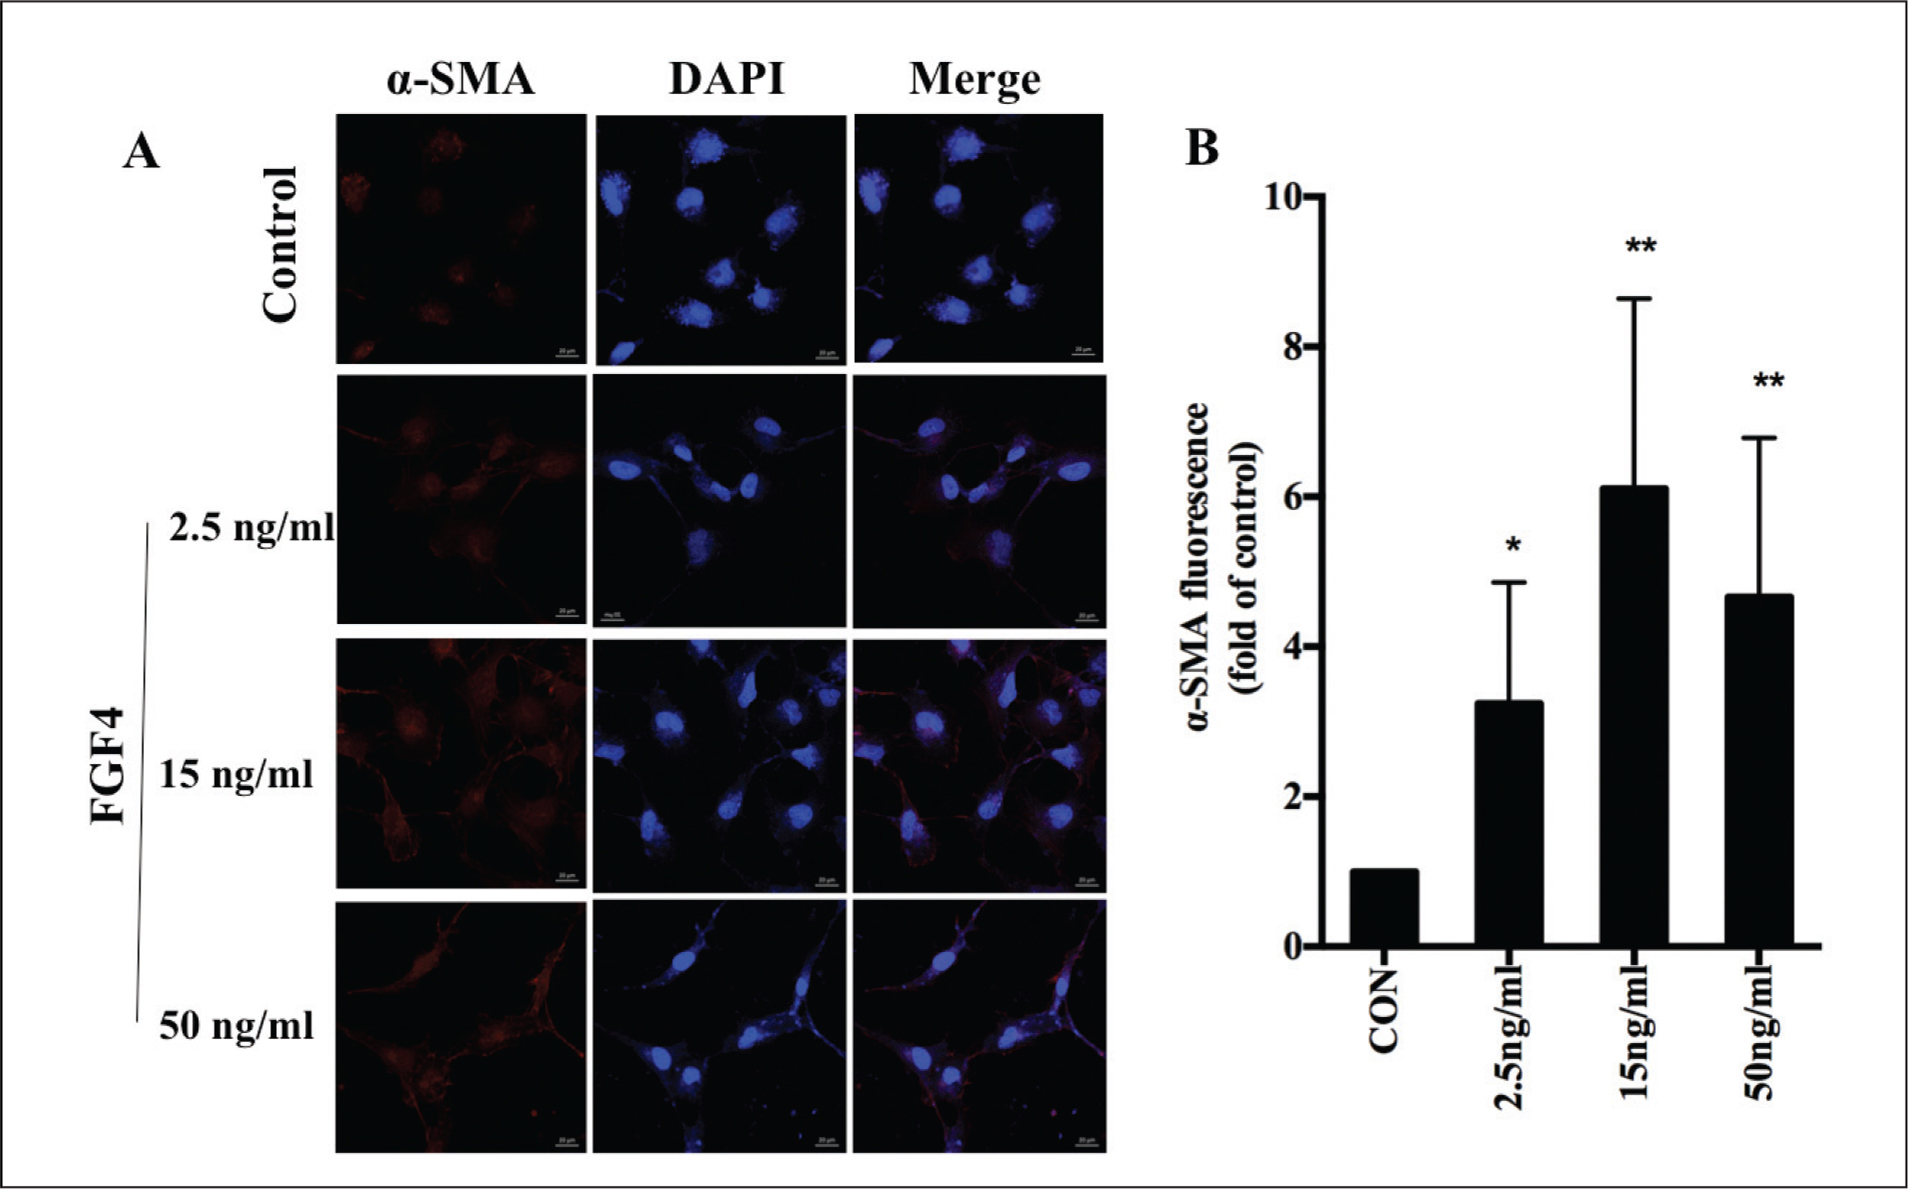 Fibroblast growth factor 4 (FGF4)–induced fibroblast transformation. (A) Fluorescent immunohistochemistry using a specific anti-α-smooth muscle actin (SMA) primary antibody and an Alexa-Fluor-555-conjugated secondary antibody demonstrated the fibroblast transformation induced by different concentrations of FGF4 (2.5, 15, or 50 ng/mL). Nuclei were stained with DAPI. Bar = 20 µm. (B) The induction effect was quantified and α-SMA fluorescence values were calculated as fold changes relative to the control. Data presented are means ± standard deviation (*P < .05, **P < .001).